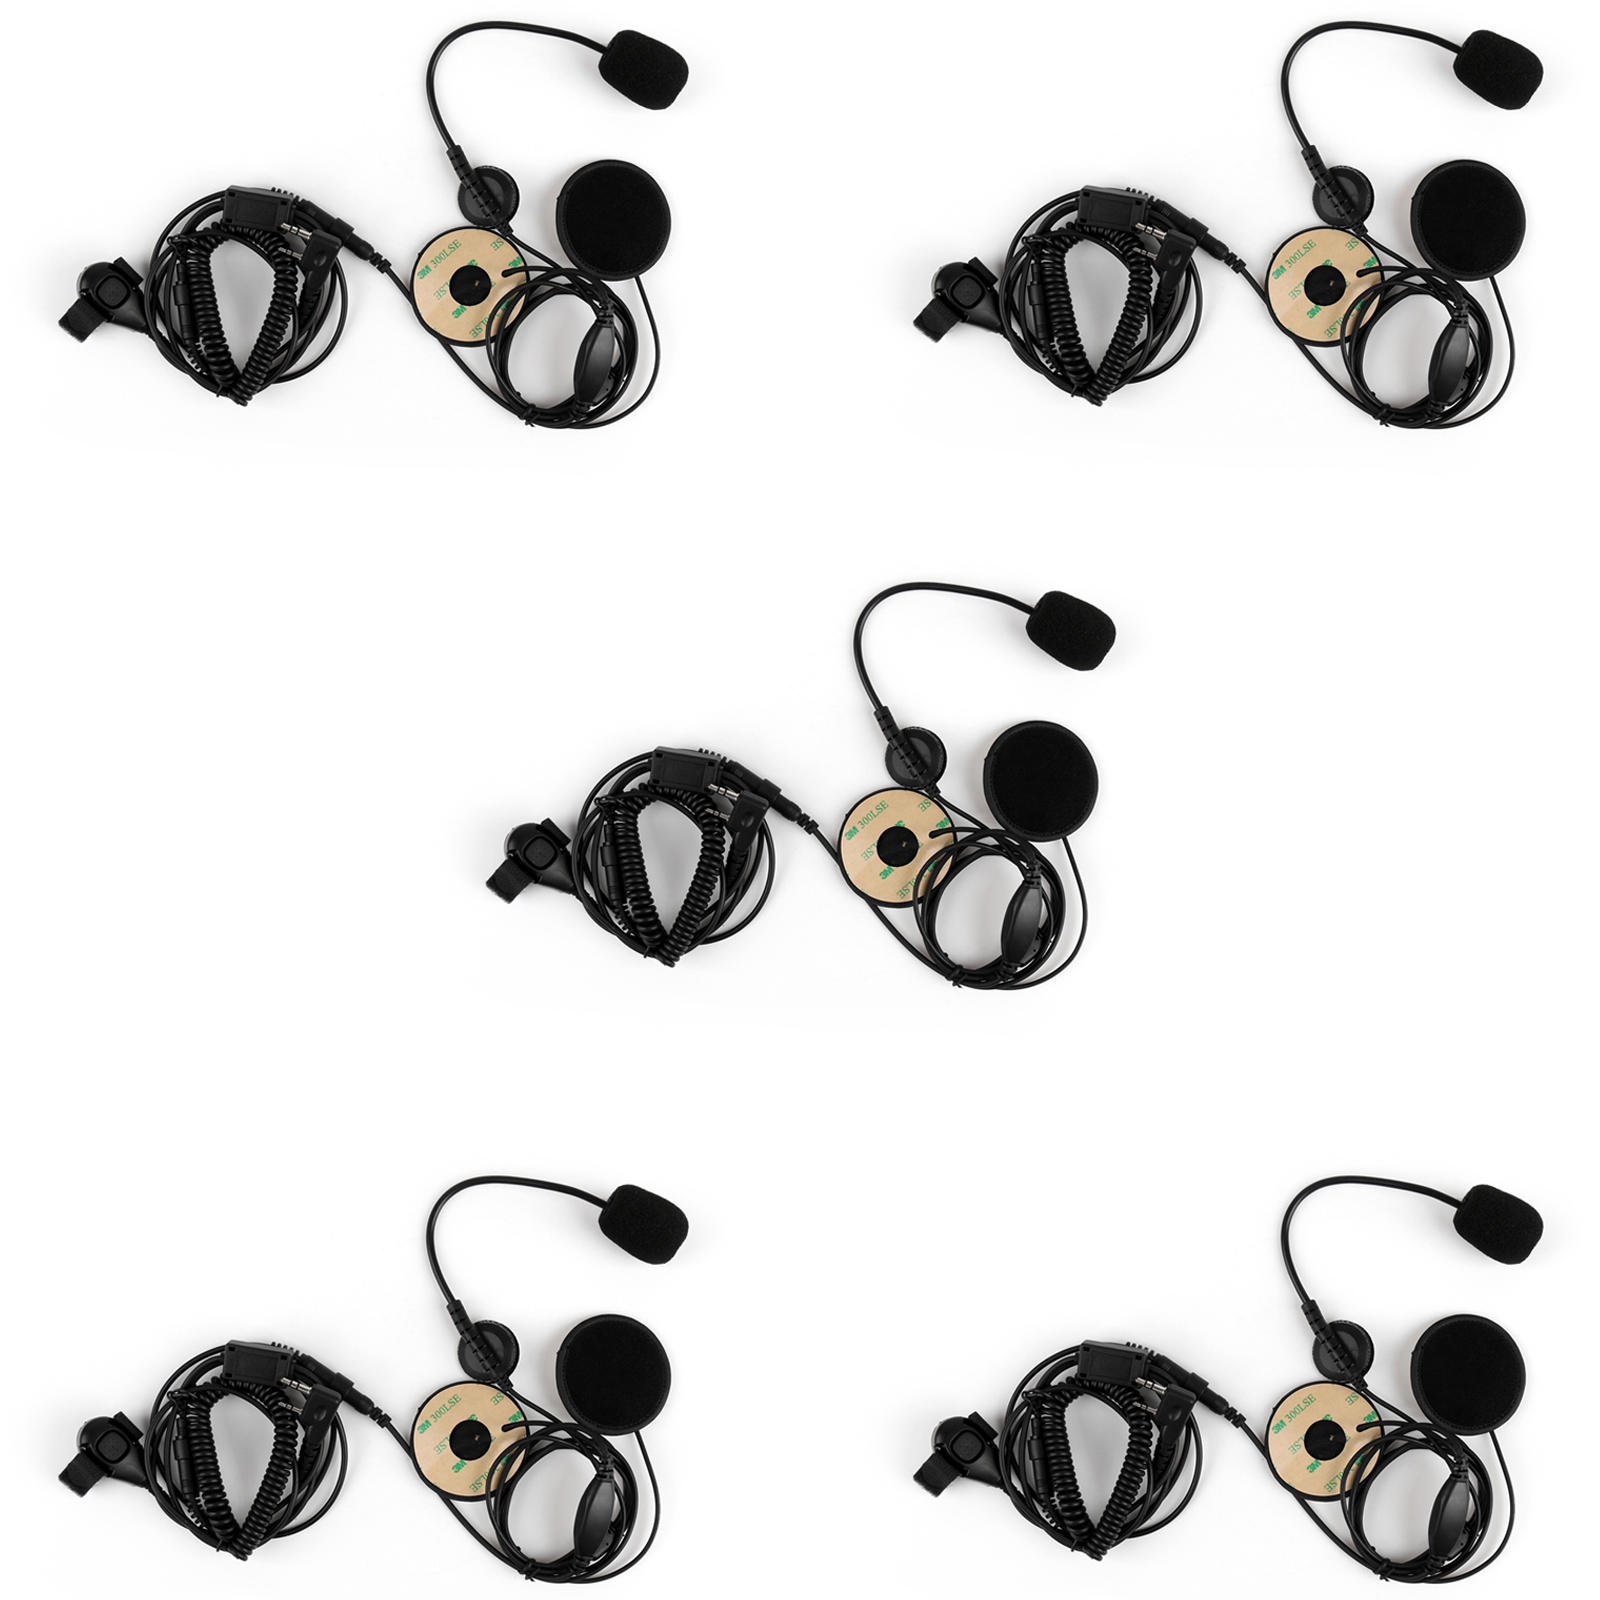 Artudatech 5Pcs 2 Pin Single Motorcycle Helmet Headset Adjustable Volume For Kenwood KPG TH TK 2 Way Radio